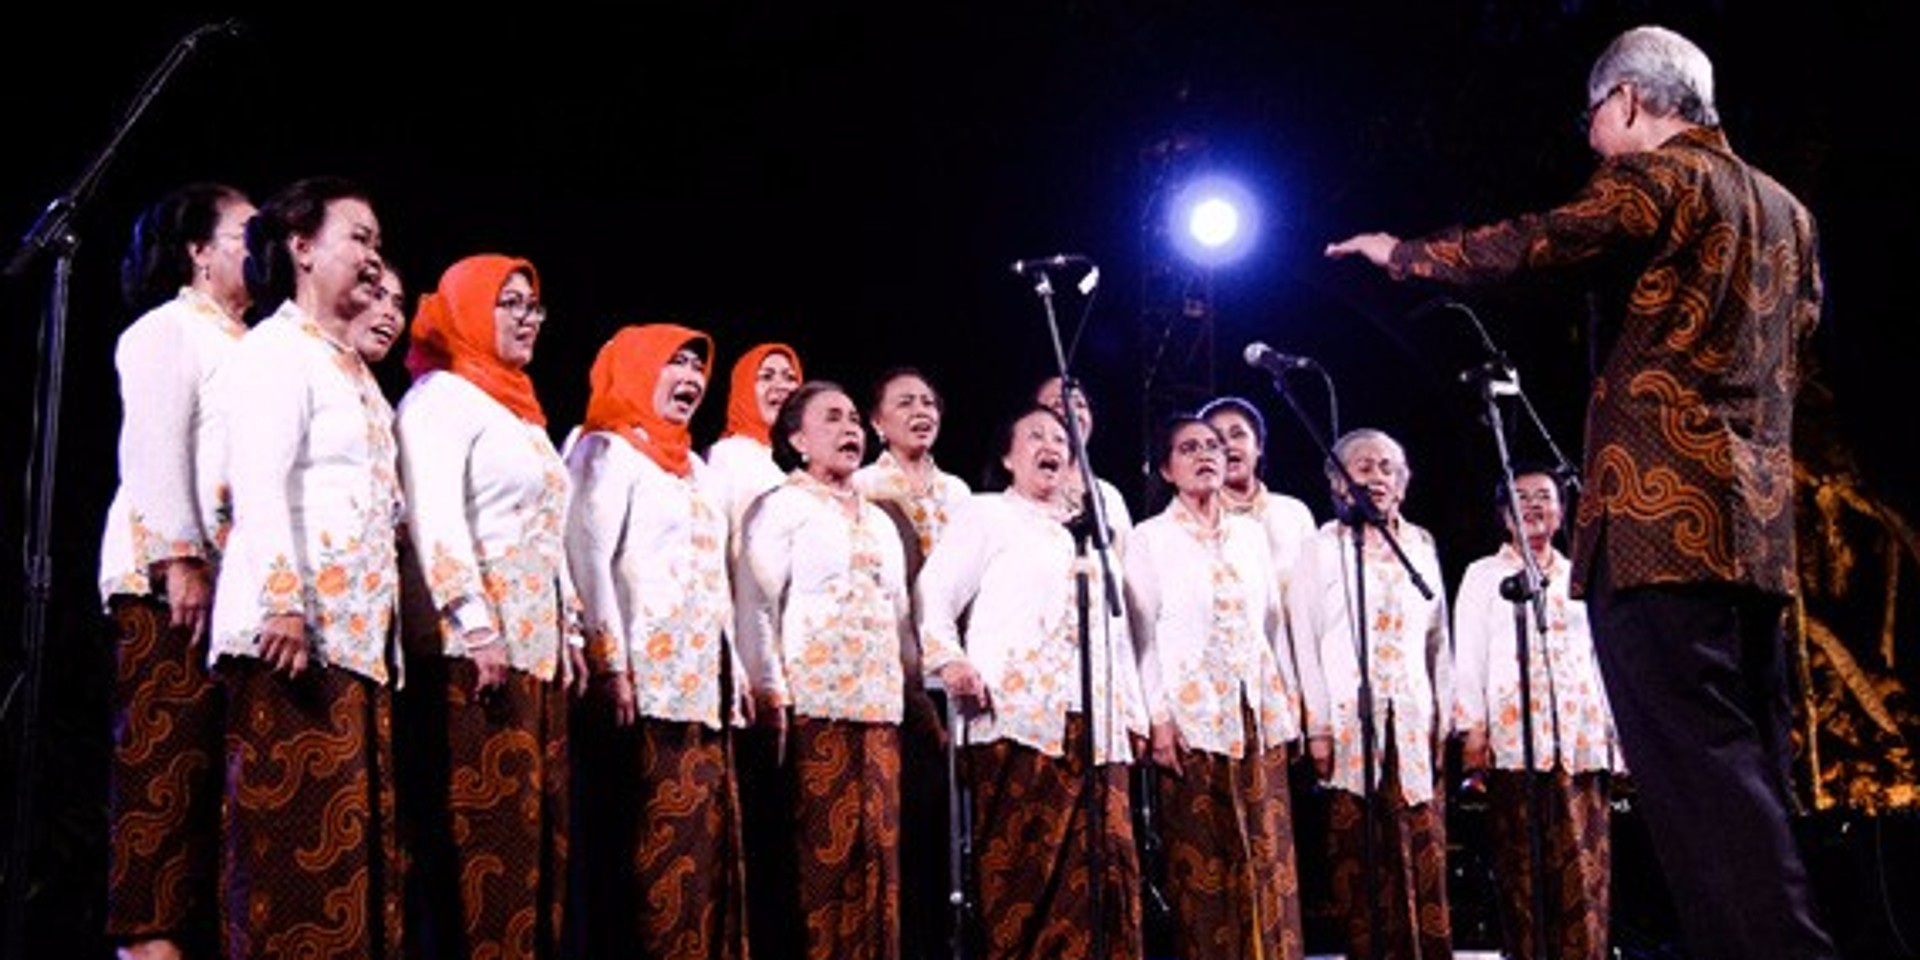 Indonesian choir Dialita releases a harrowing LP of songs written in prisons